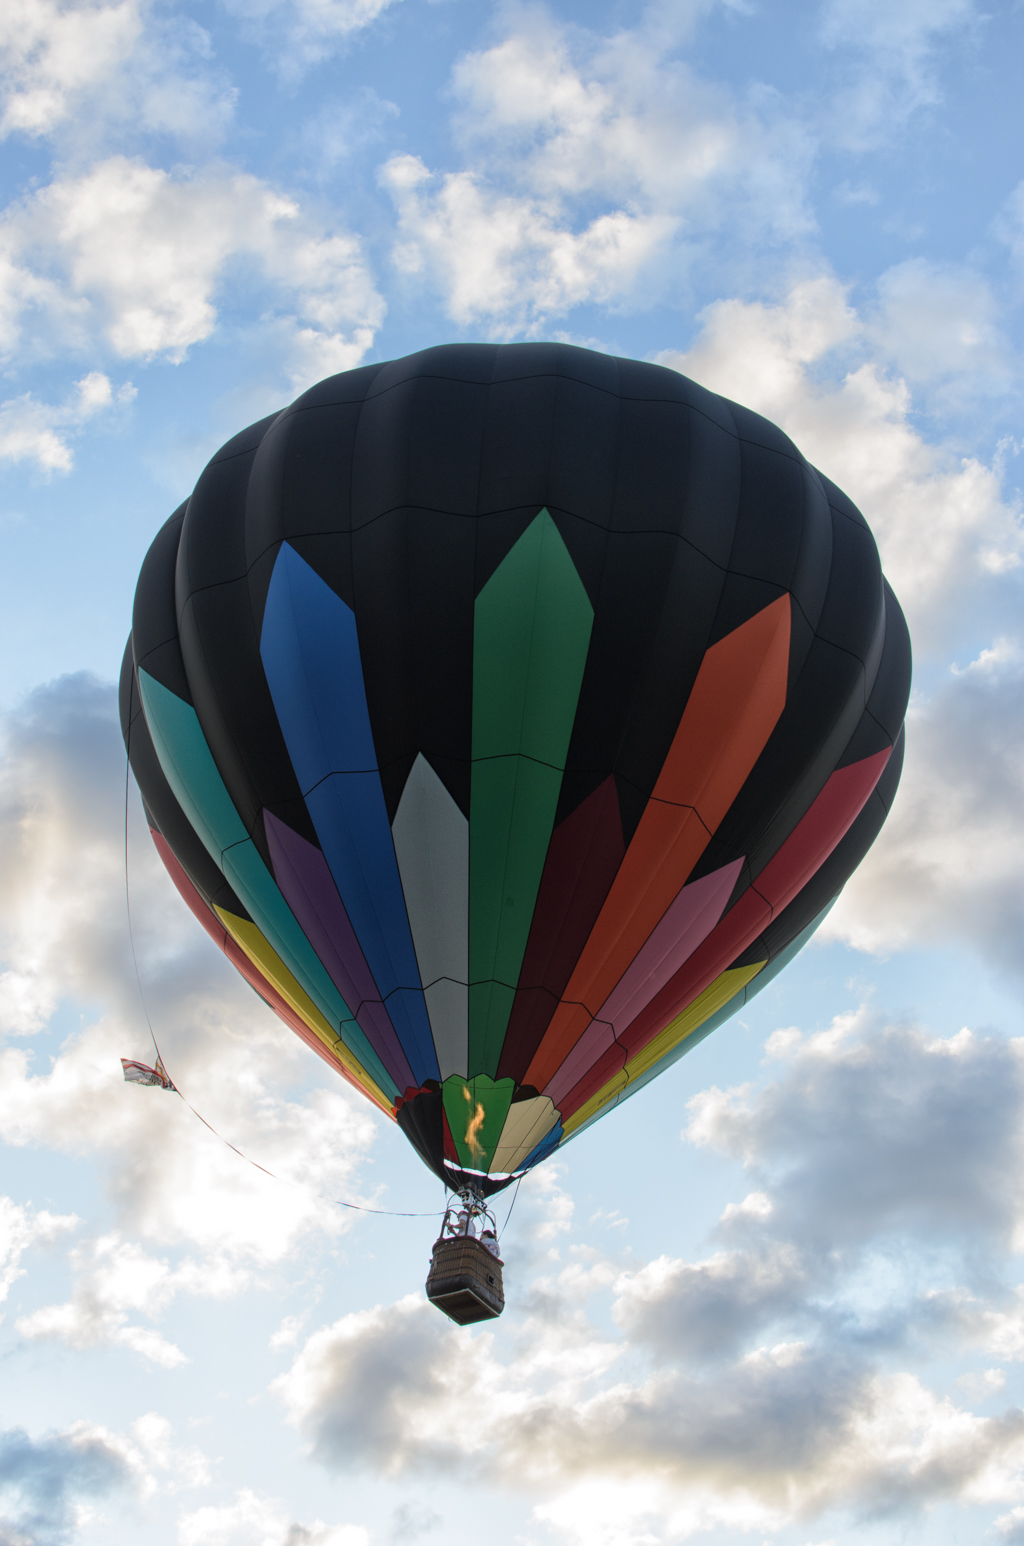 32nd annual New Jersey Festival of Ballooning, wpid14582 NIKON D5100 20140725 0968 Edit 2